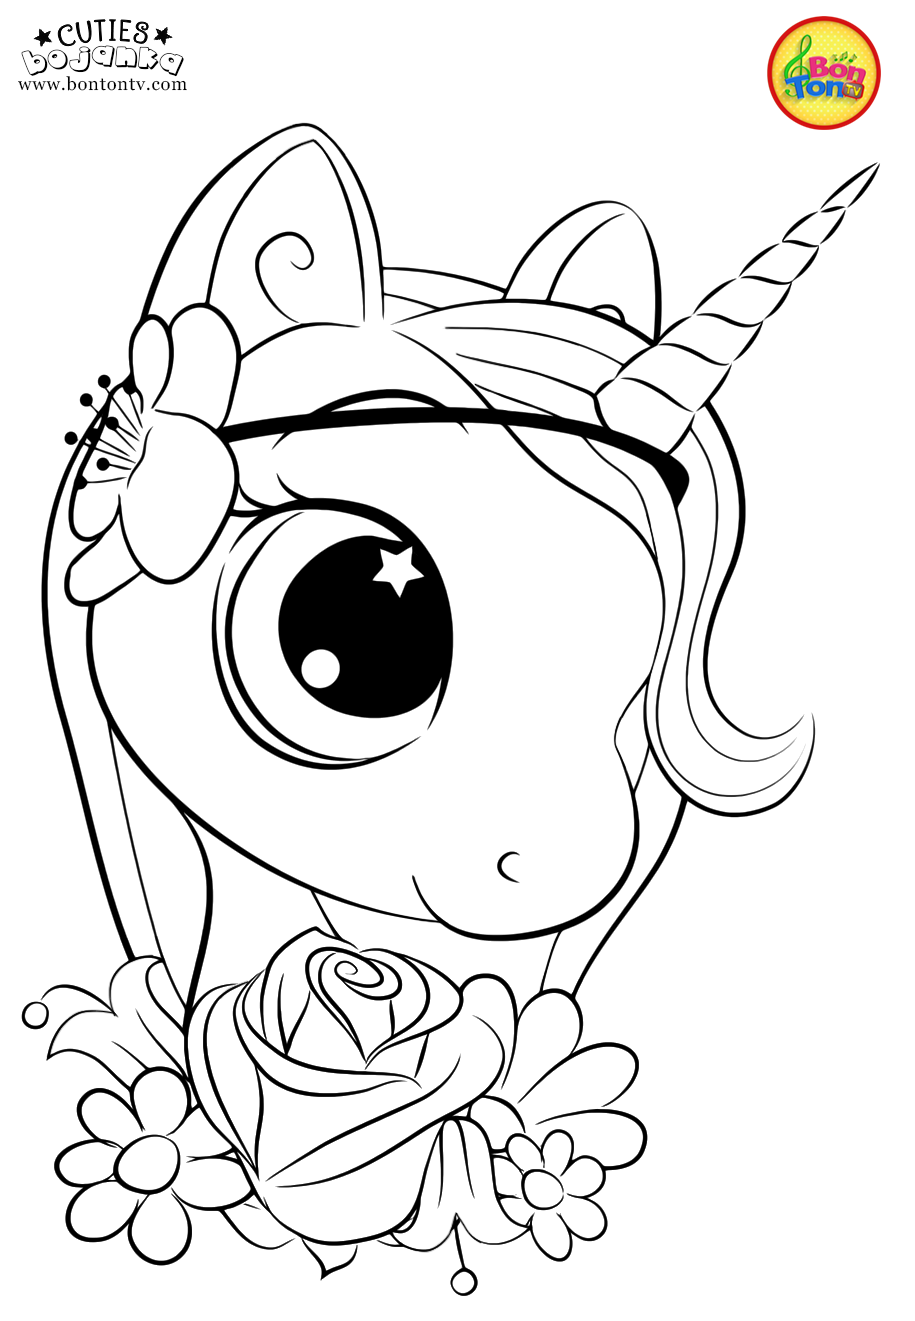 Cuties Coloring Pages For Kids Free Preschool Printables Unicorn Coloring Pages Animal Coloring Pages Princess Coloring Pages